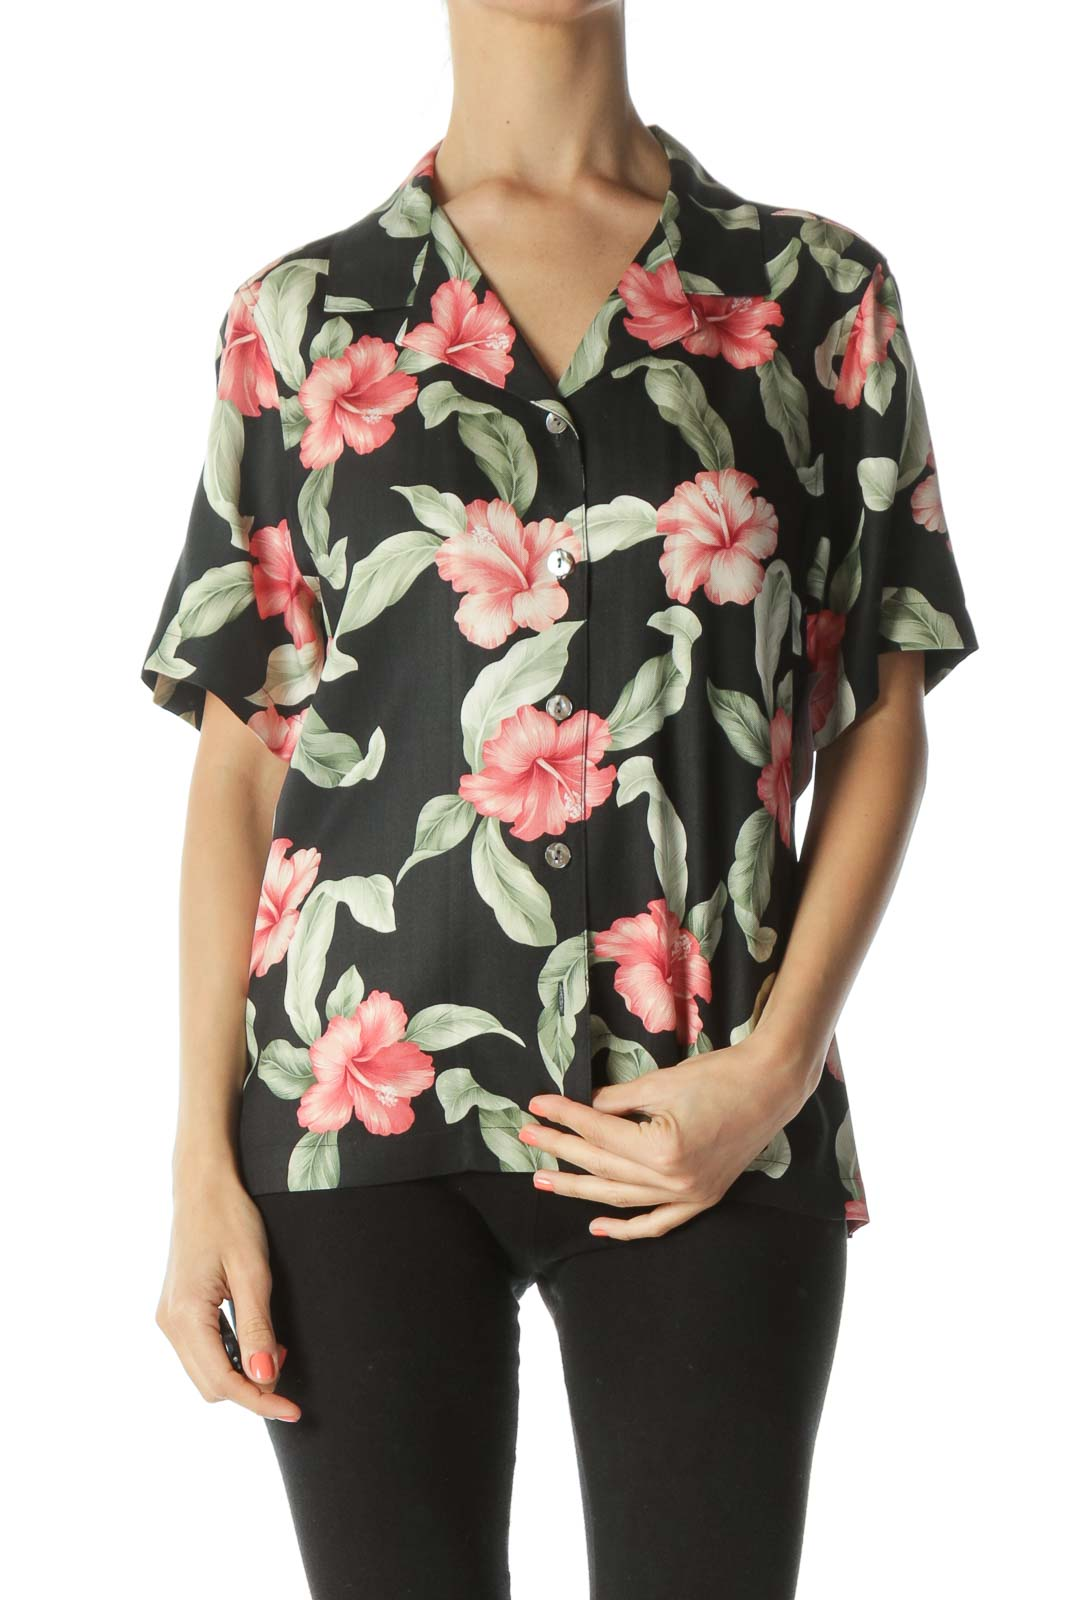 Black/Green/Pink 100% Silk Floral-Print Buttoned T-Shirt Front